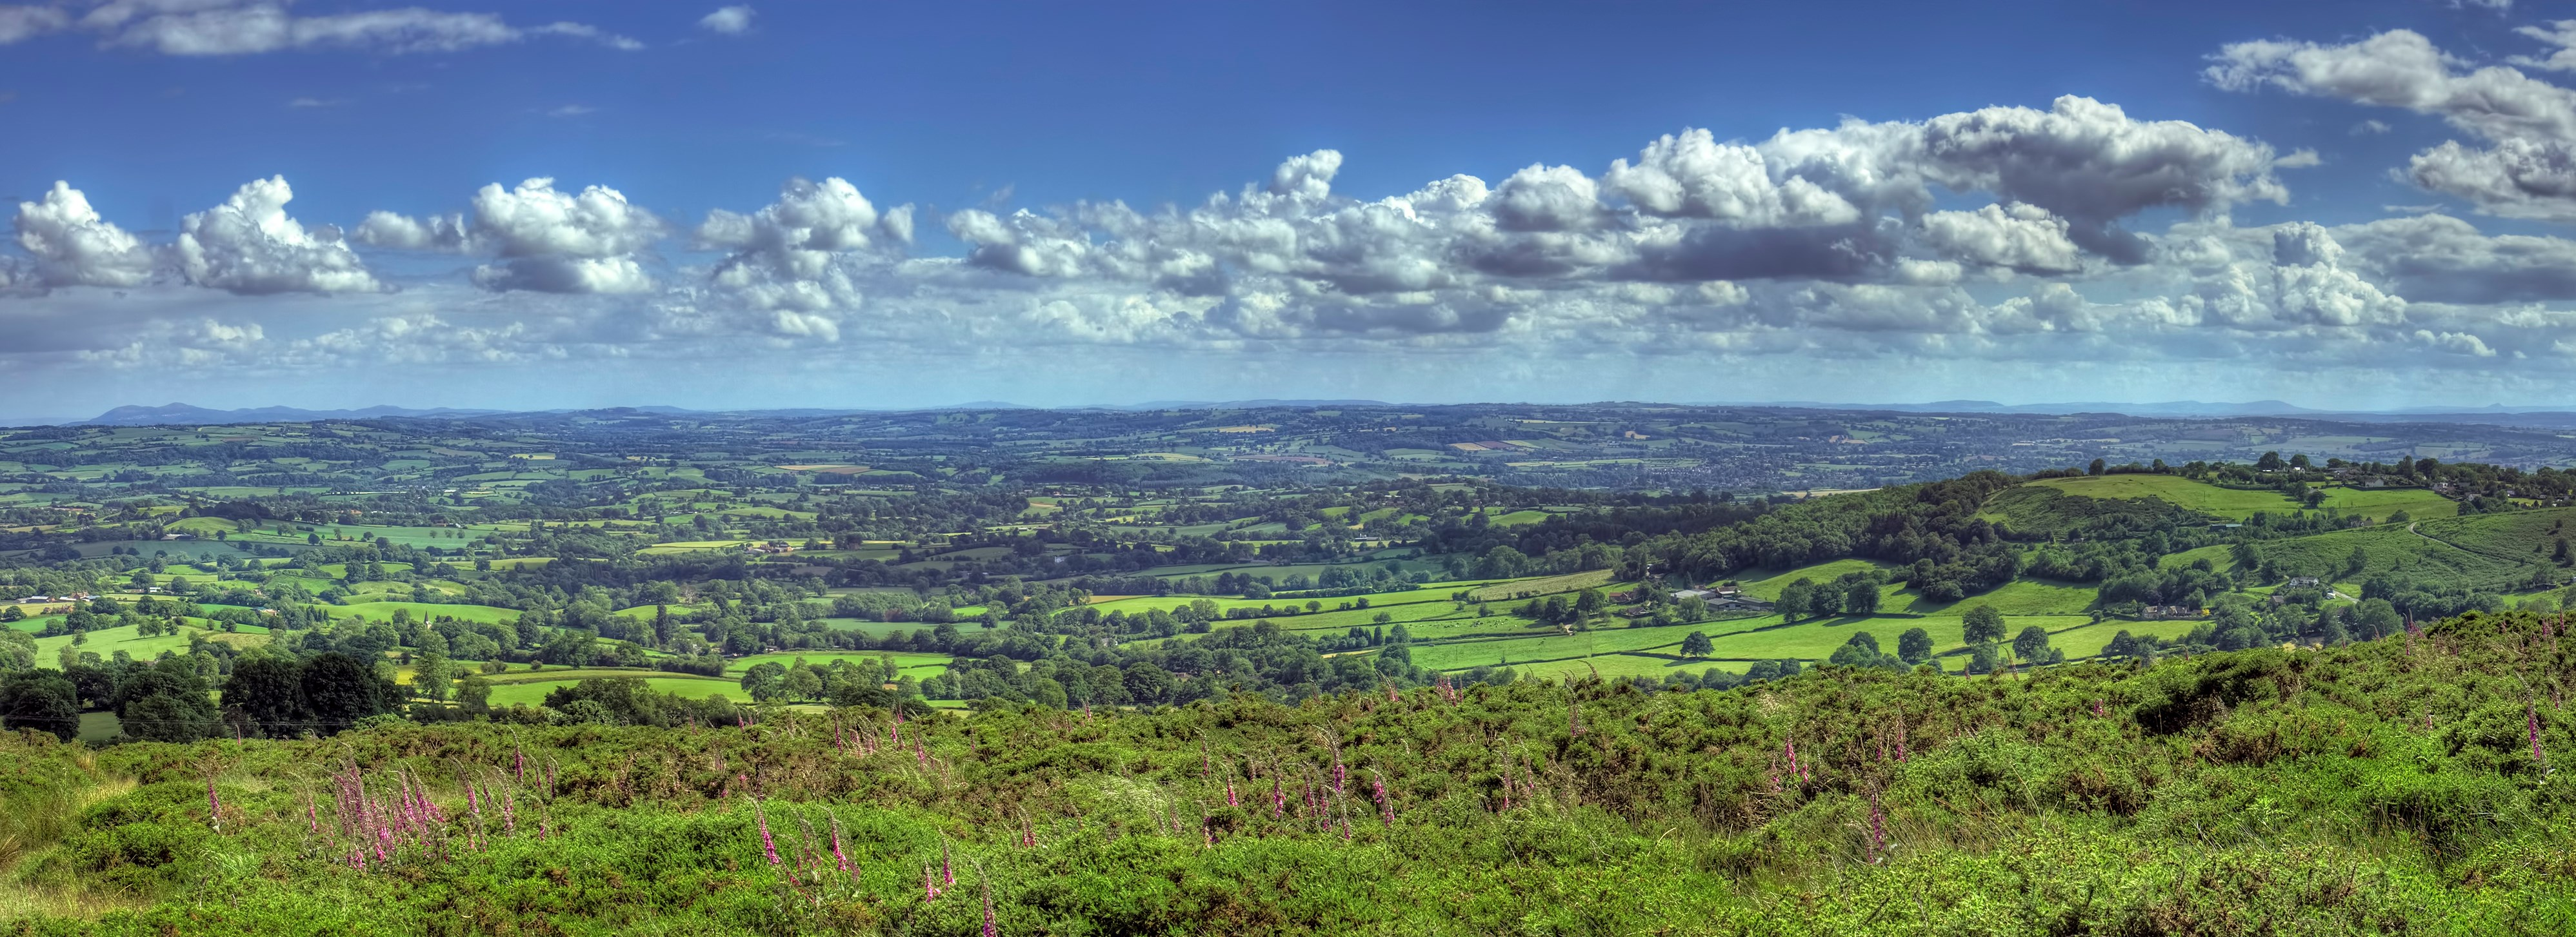 View over Herefordshire.jpg